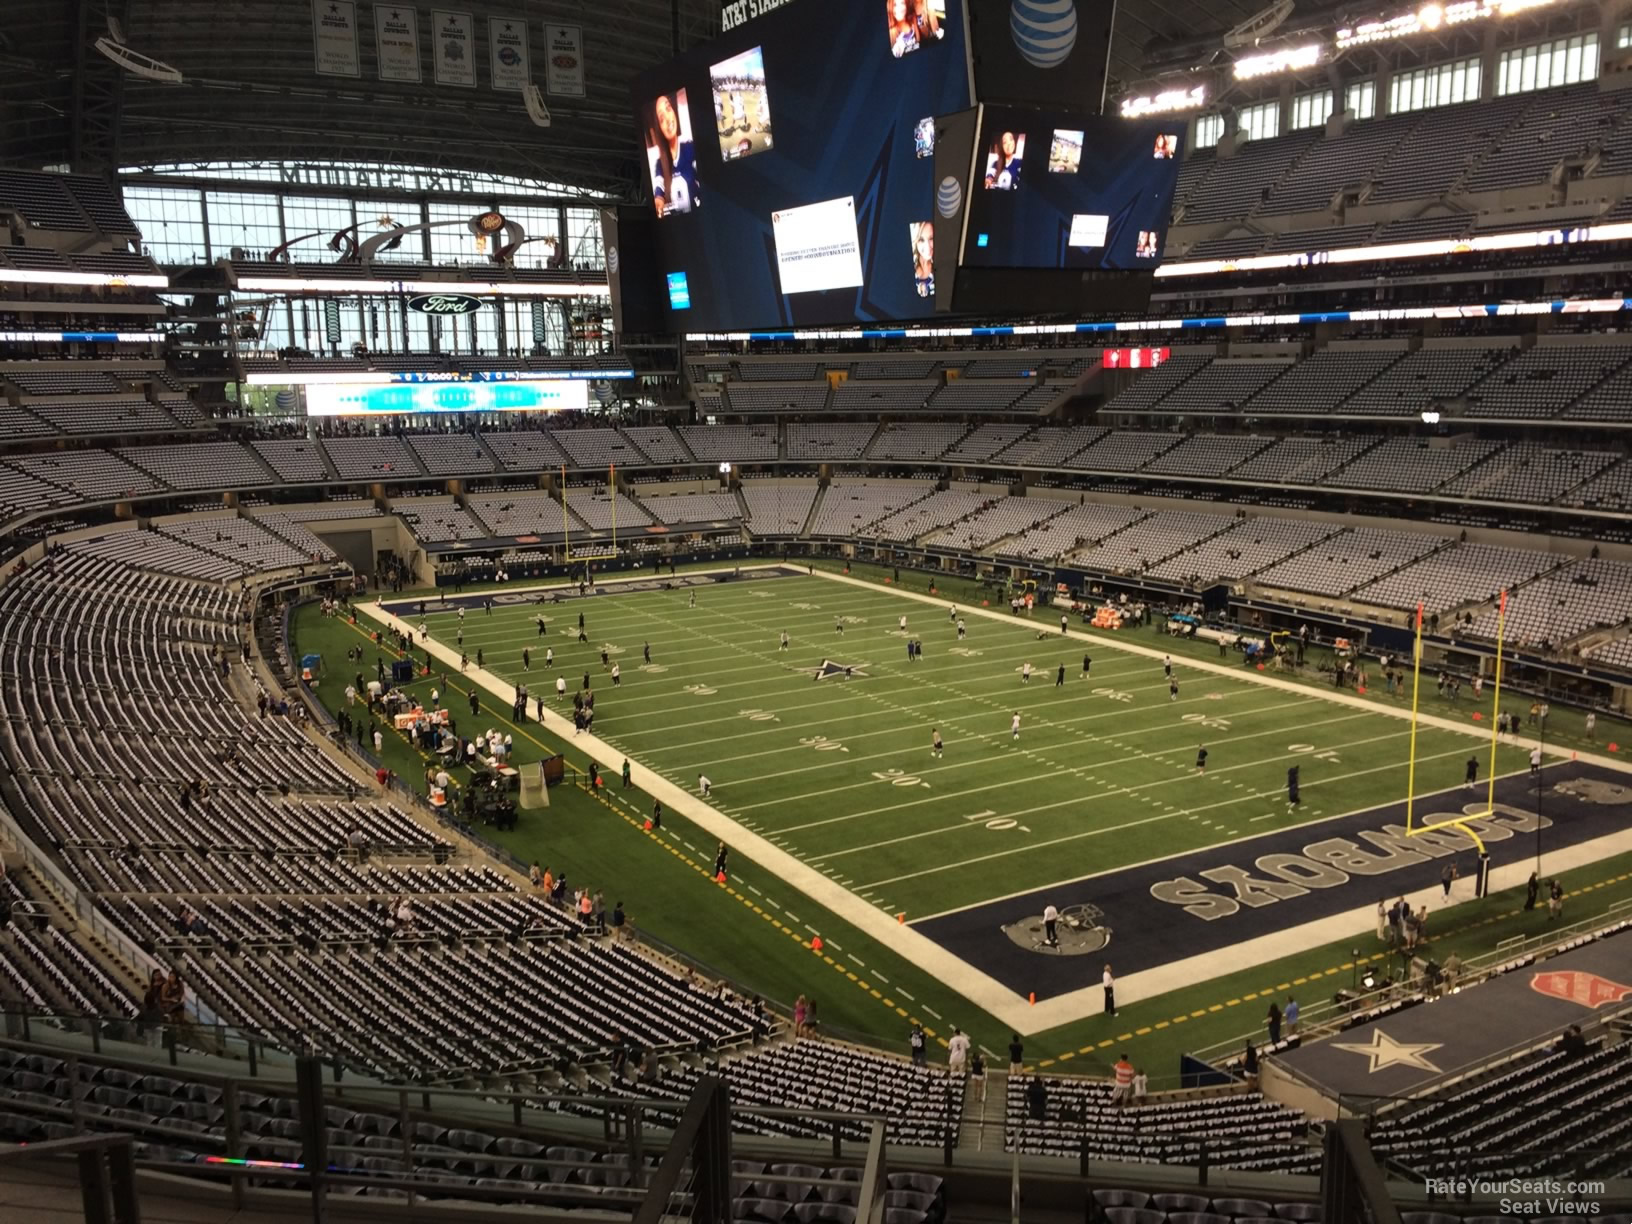 AT&T Stadium Section 328 - Dallas Cowboys - RateYourSeats.com